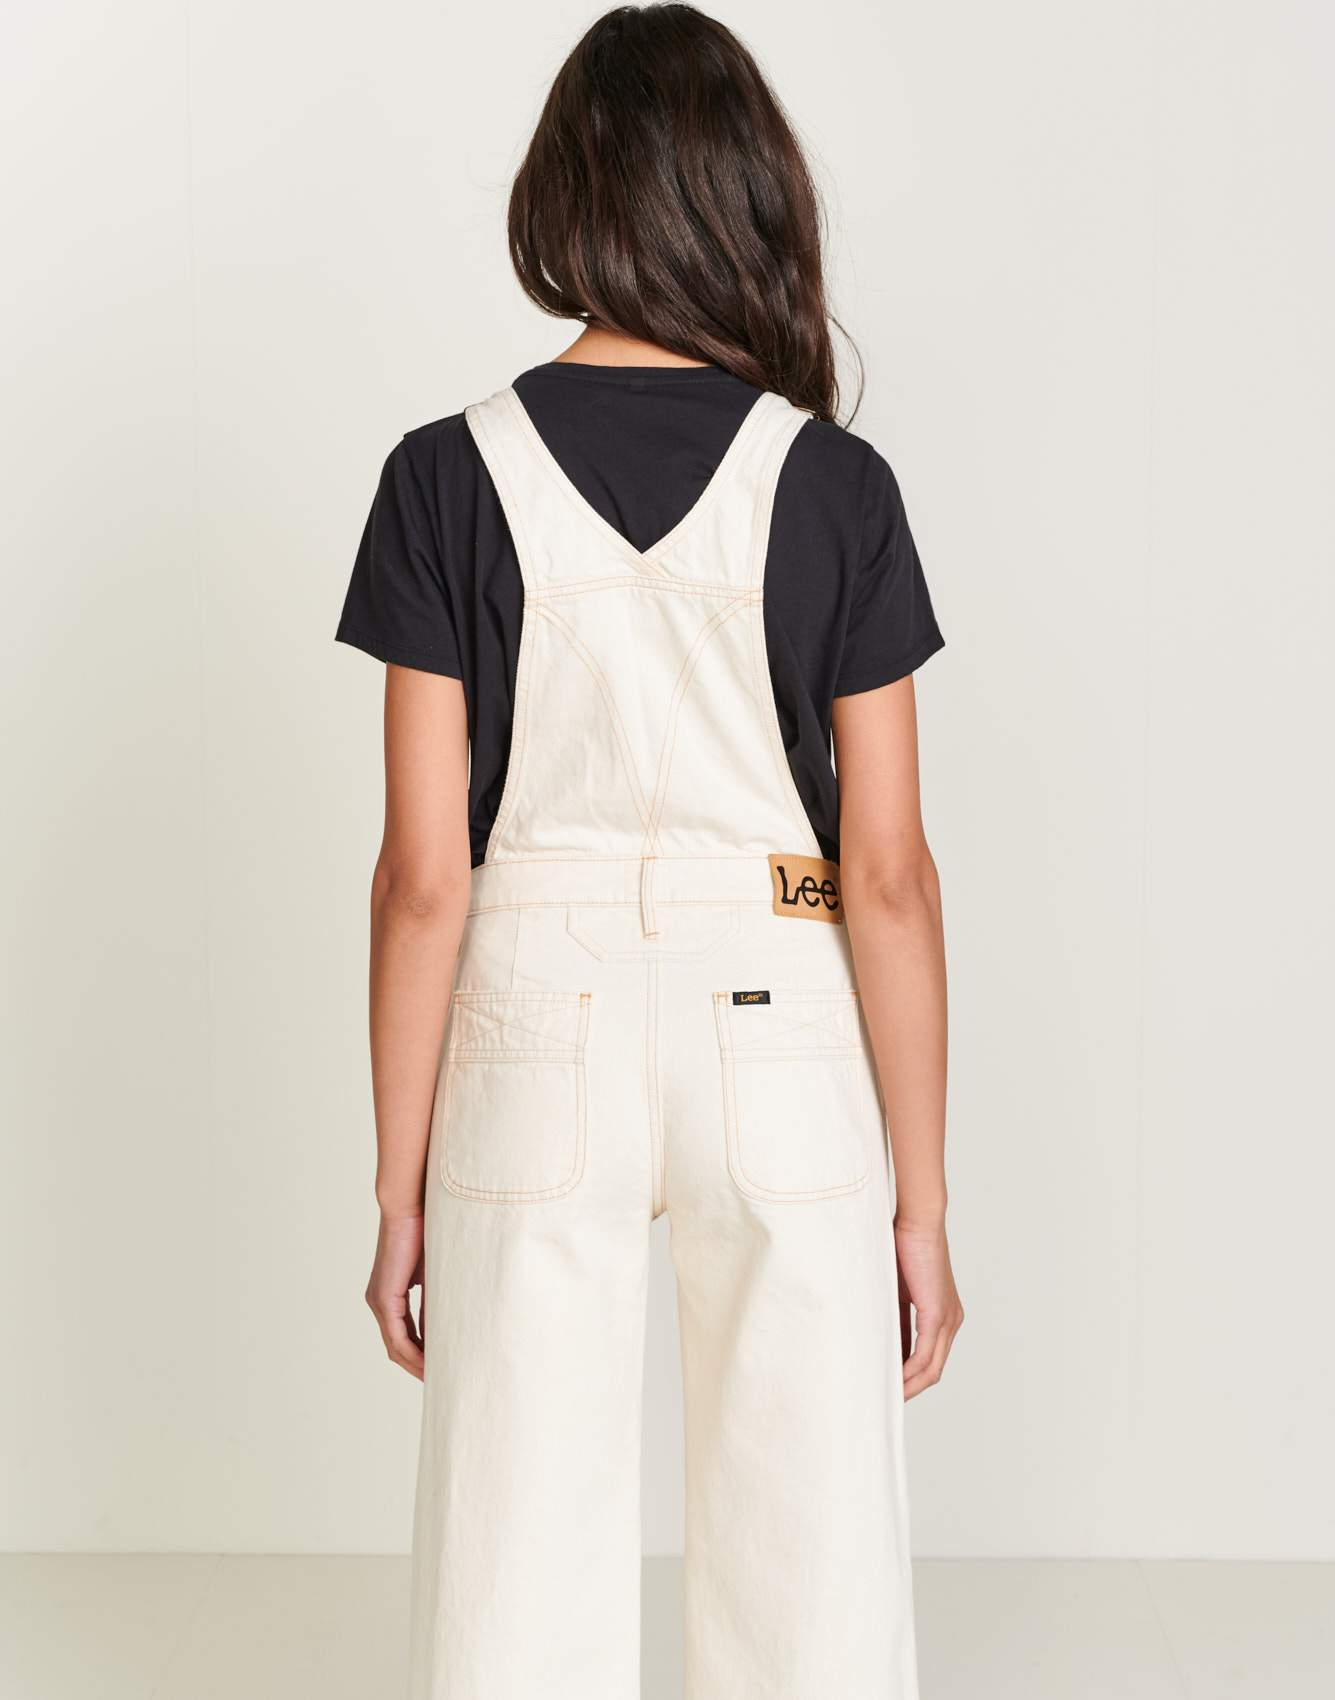 LEE | WIDE BIB OVERALL